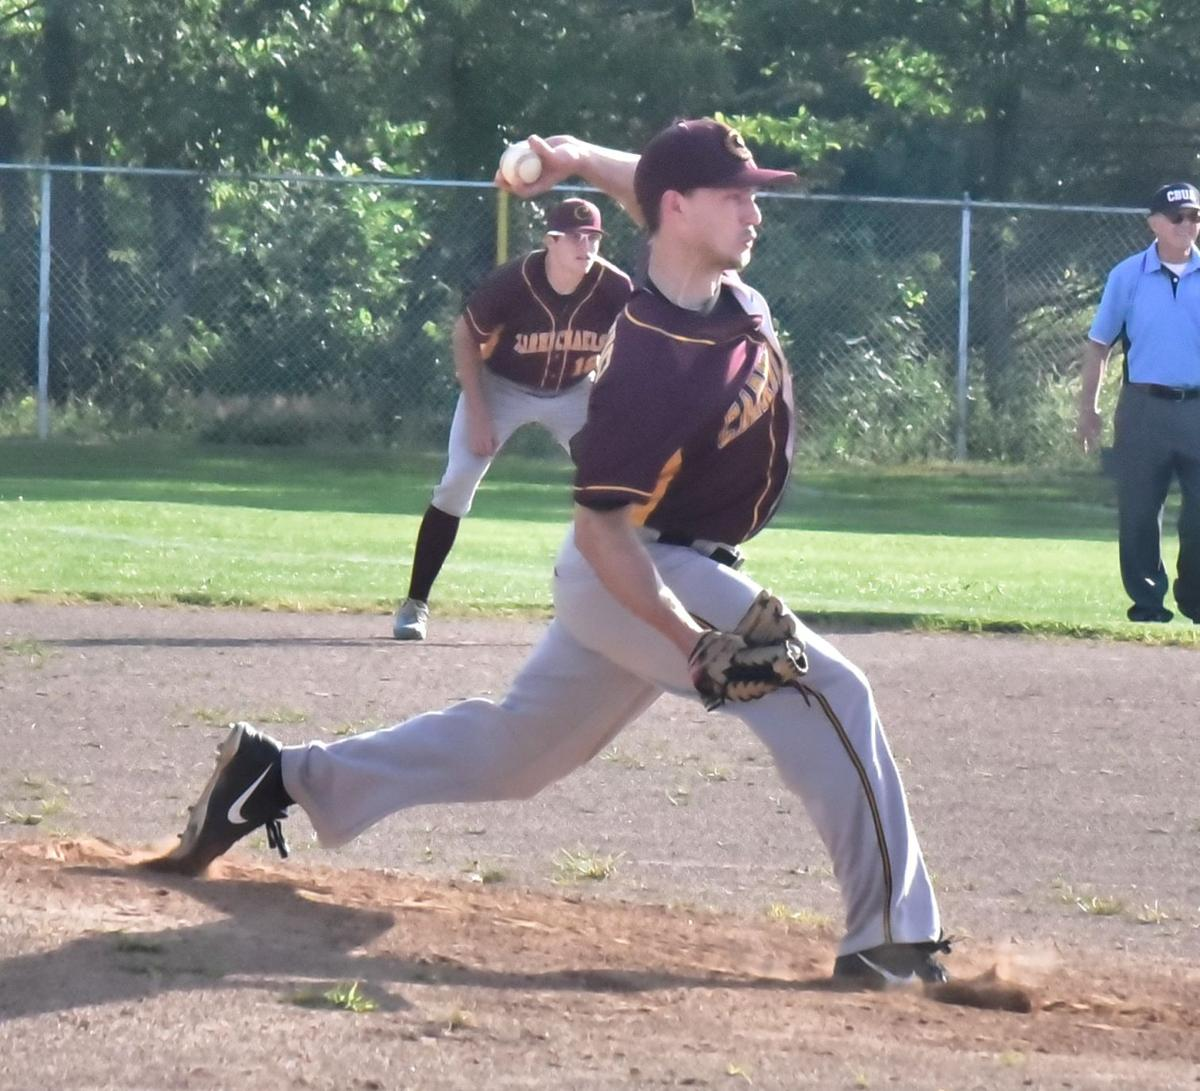 Lapkowicz gets the win for the Copperheads